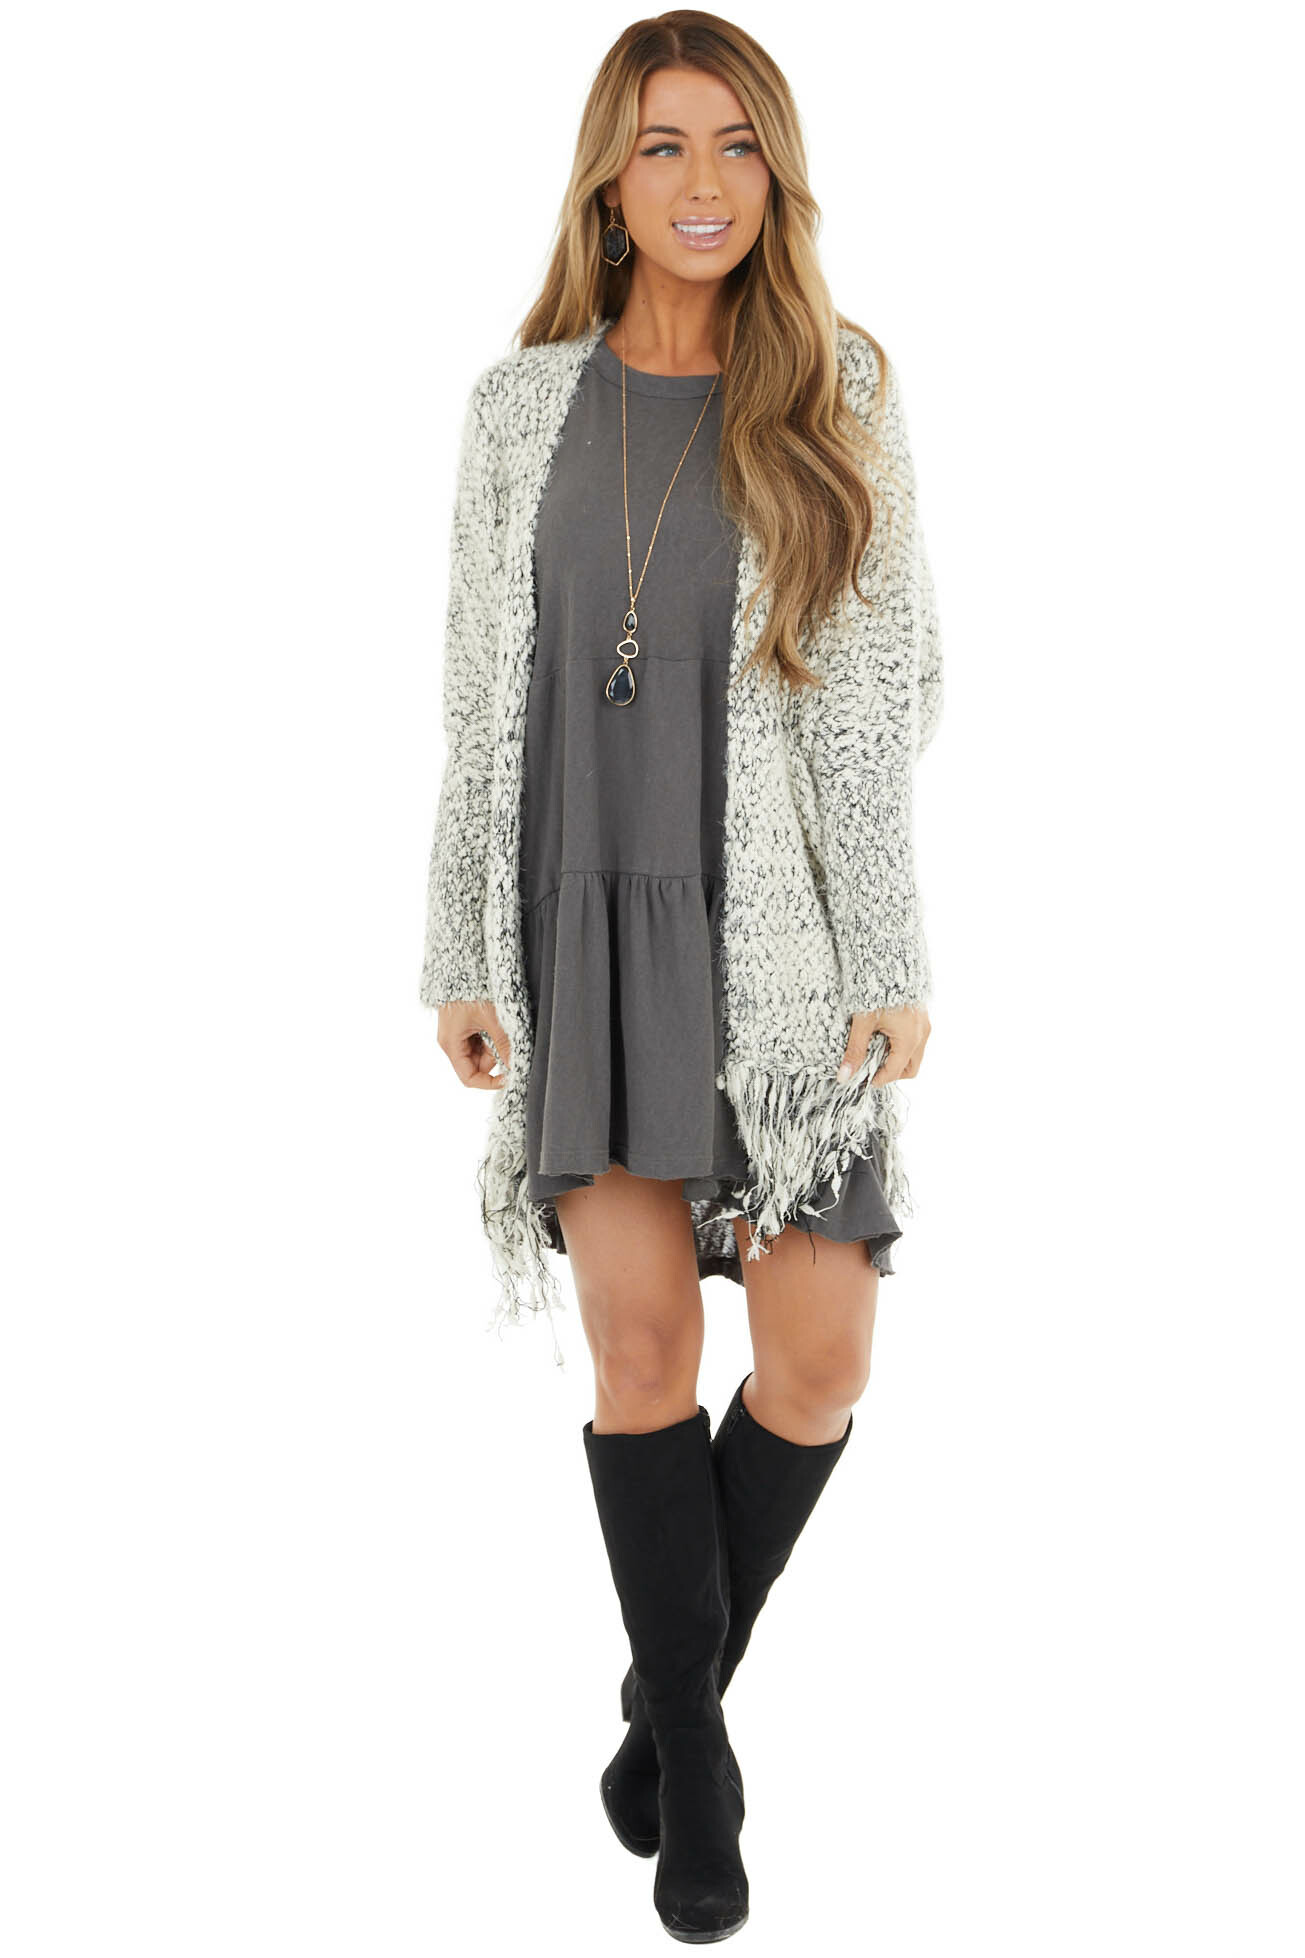 Black and White Textured Knit Cardigan with Fringe